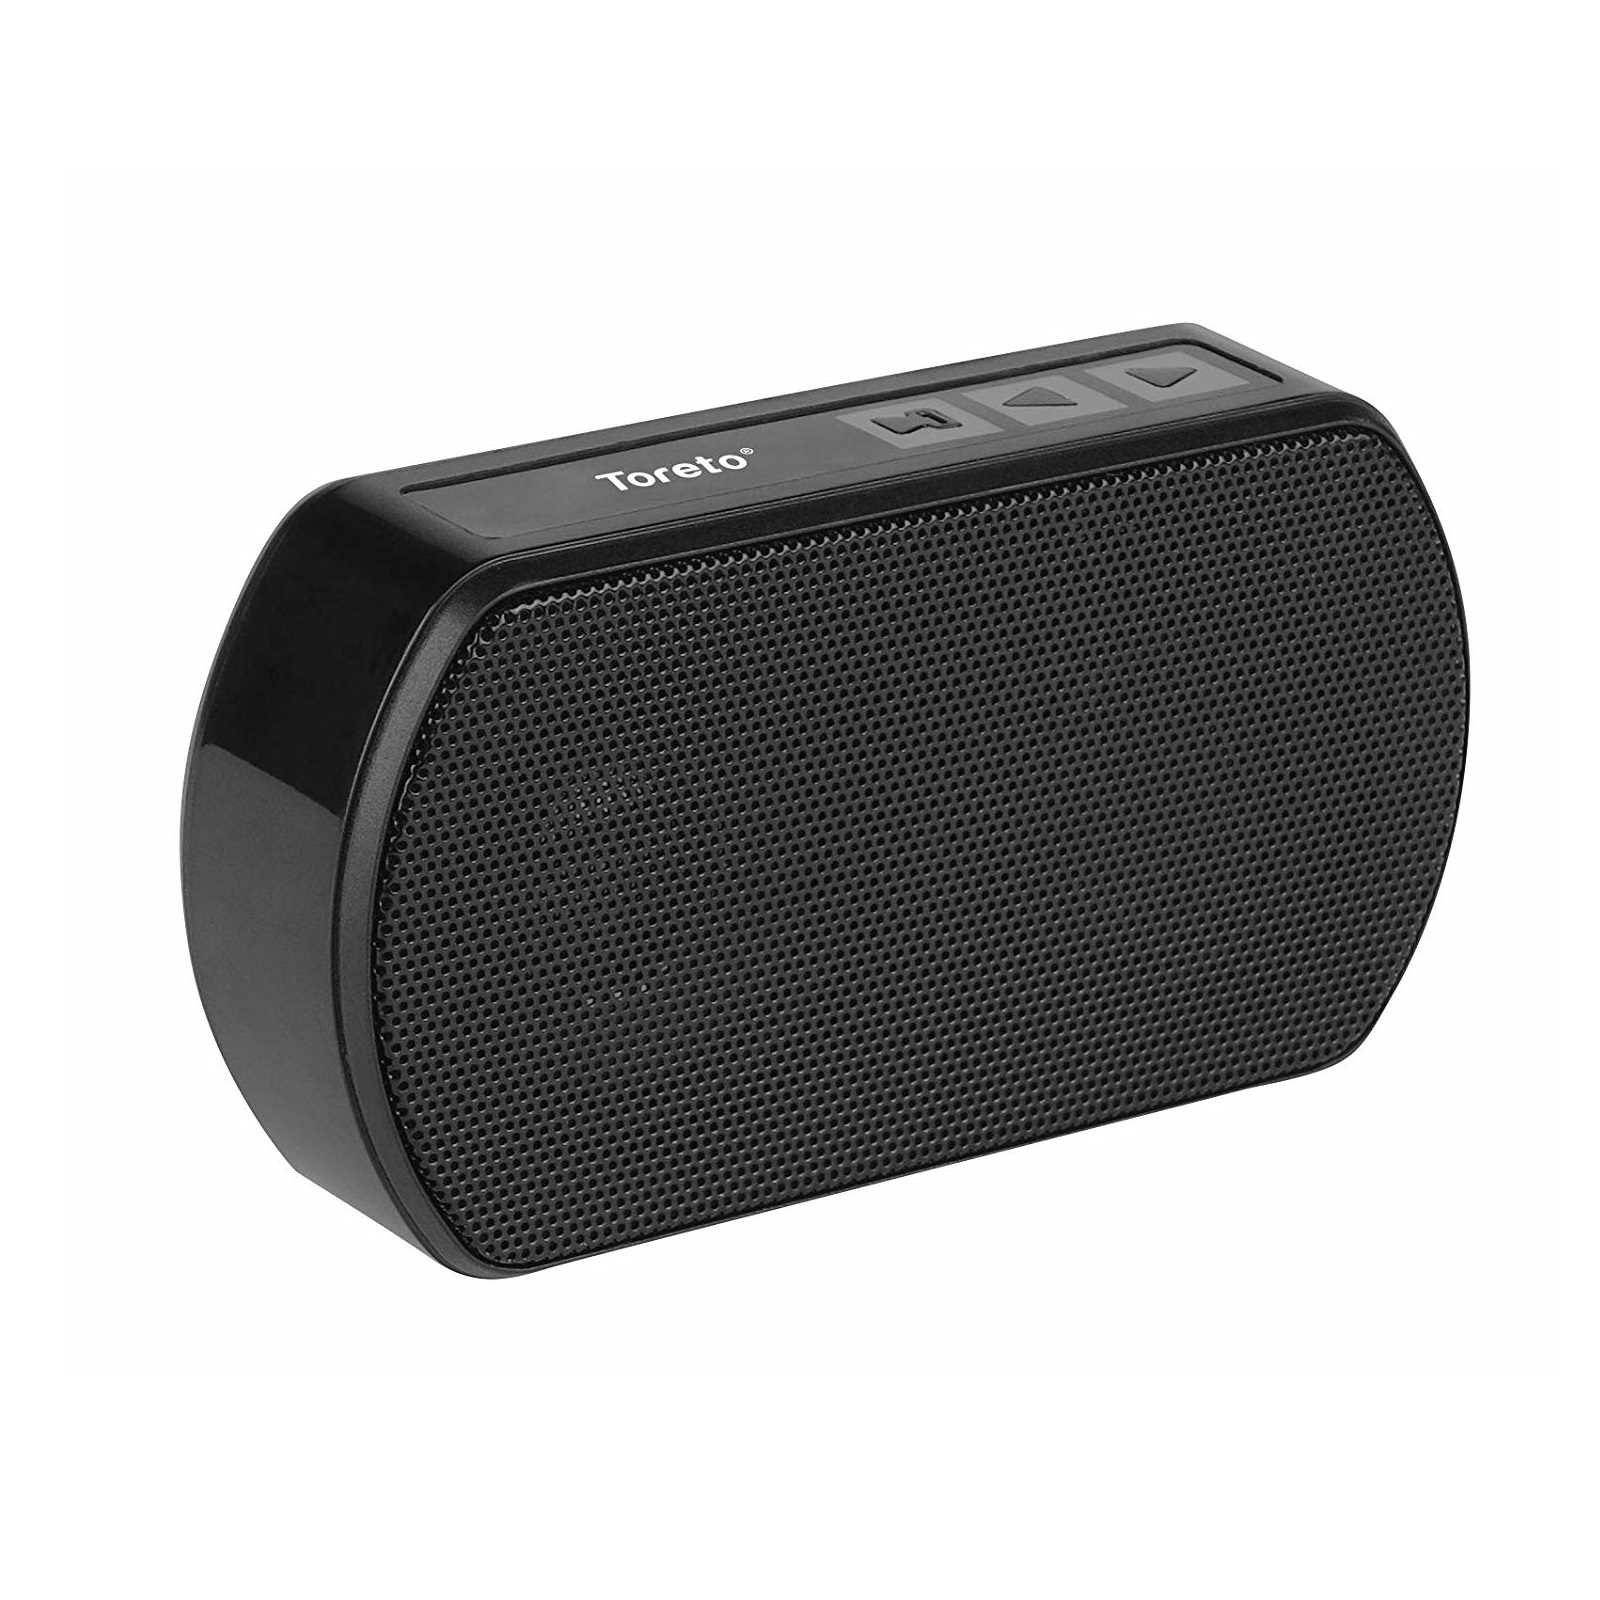 Toreto Pro Booster Bluetooth Speaker Price 31 Aug 2020 Pro Booster Reviews And Specifications